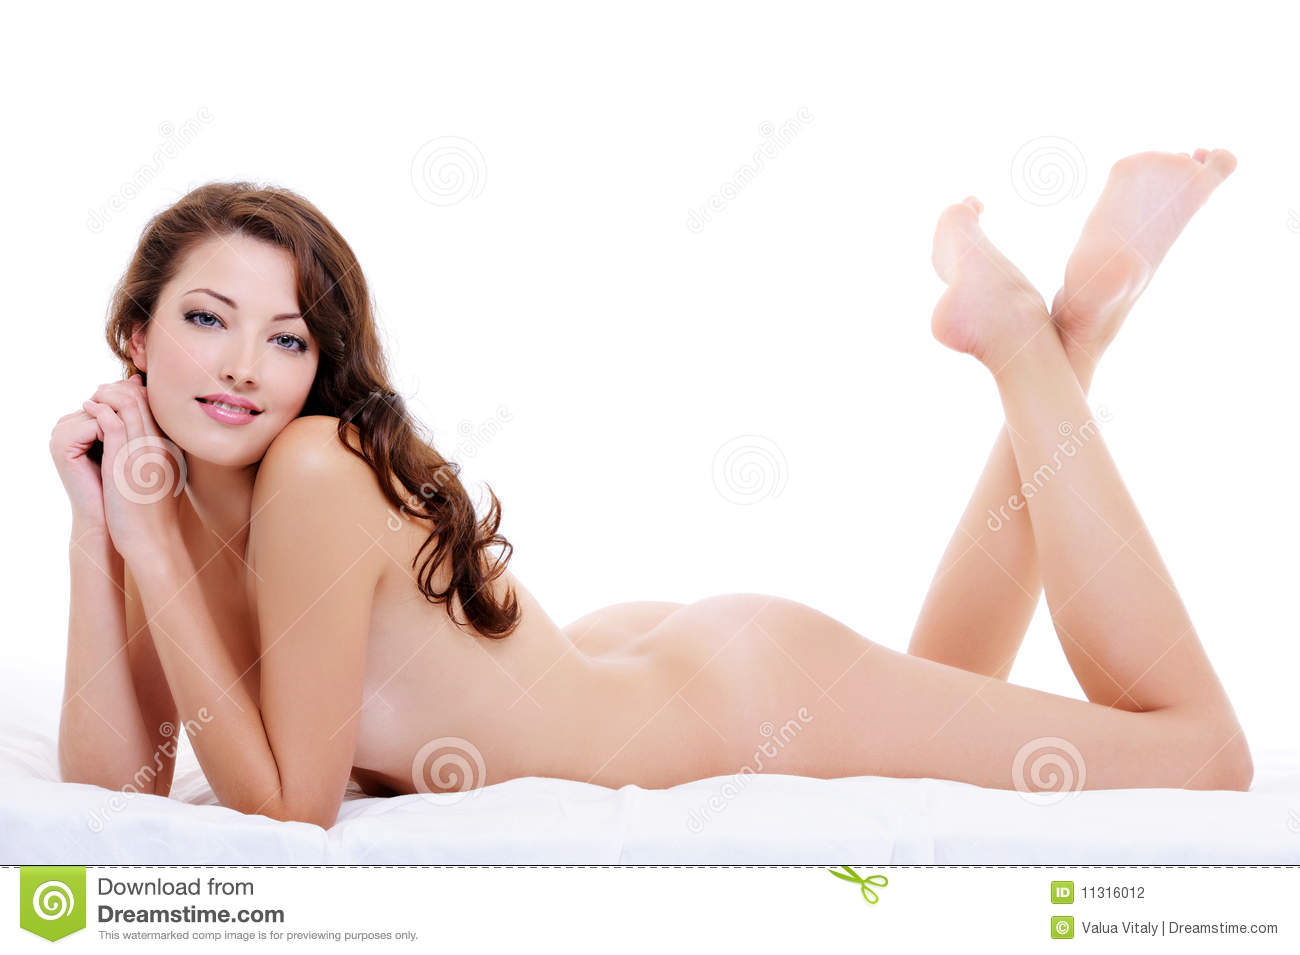 Understand Full length nude model recollect more